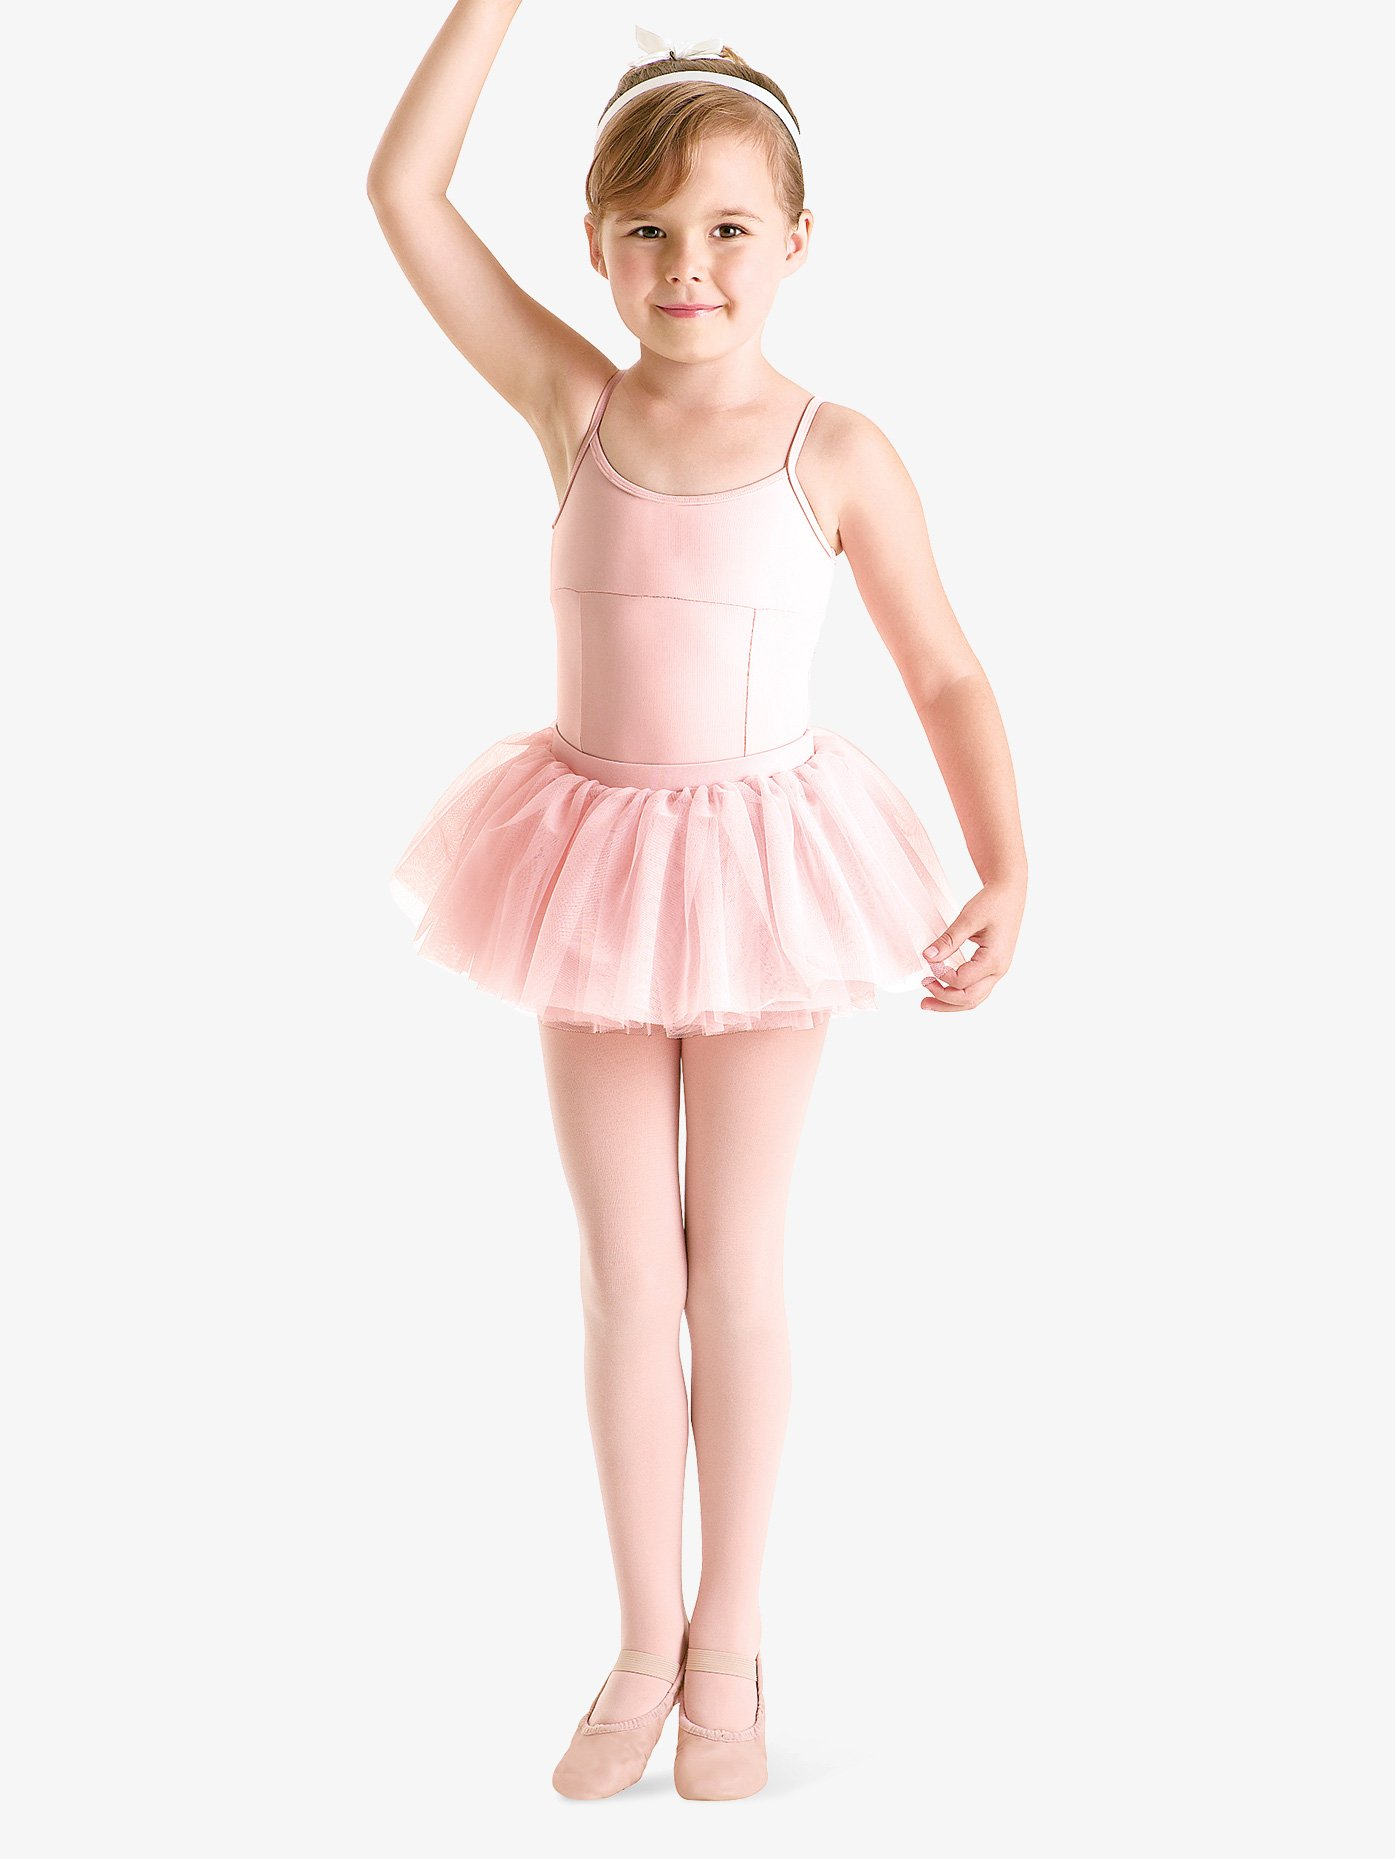 Discountdance.com coupon code